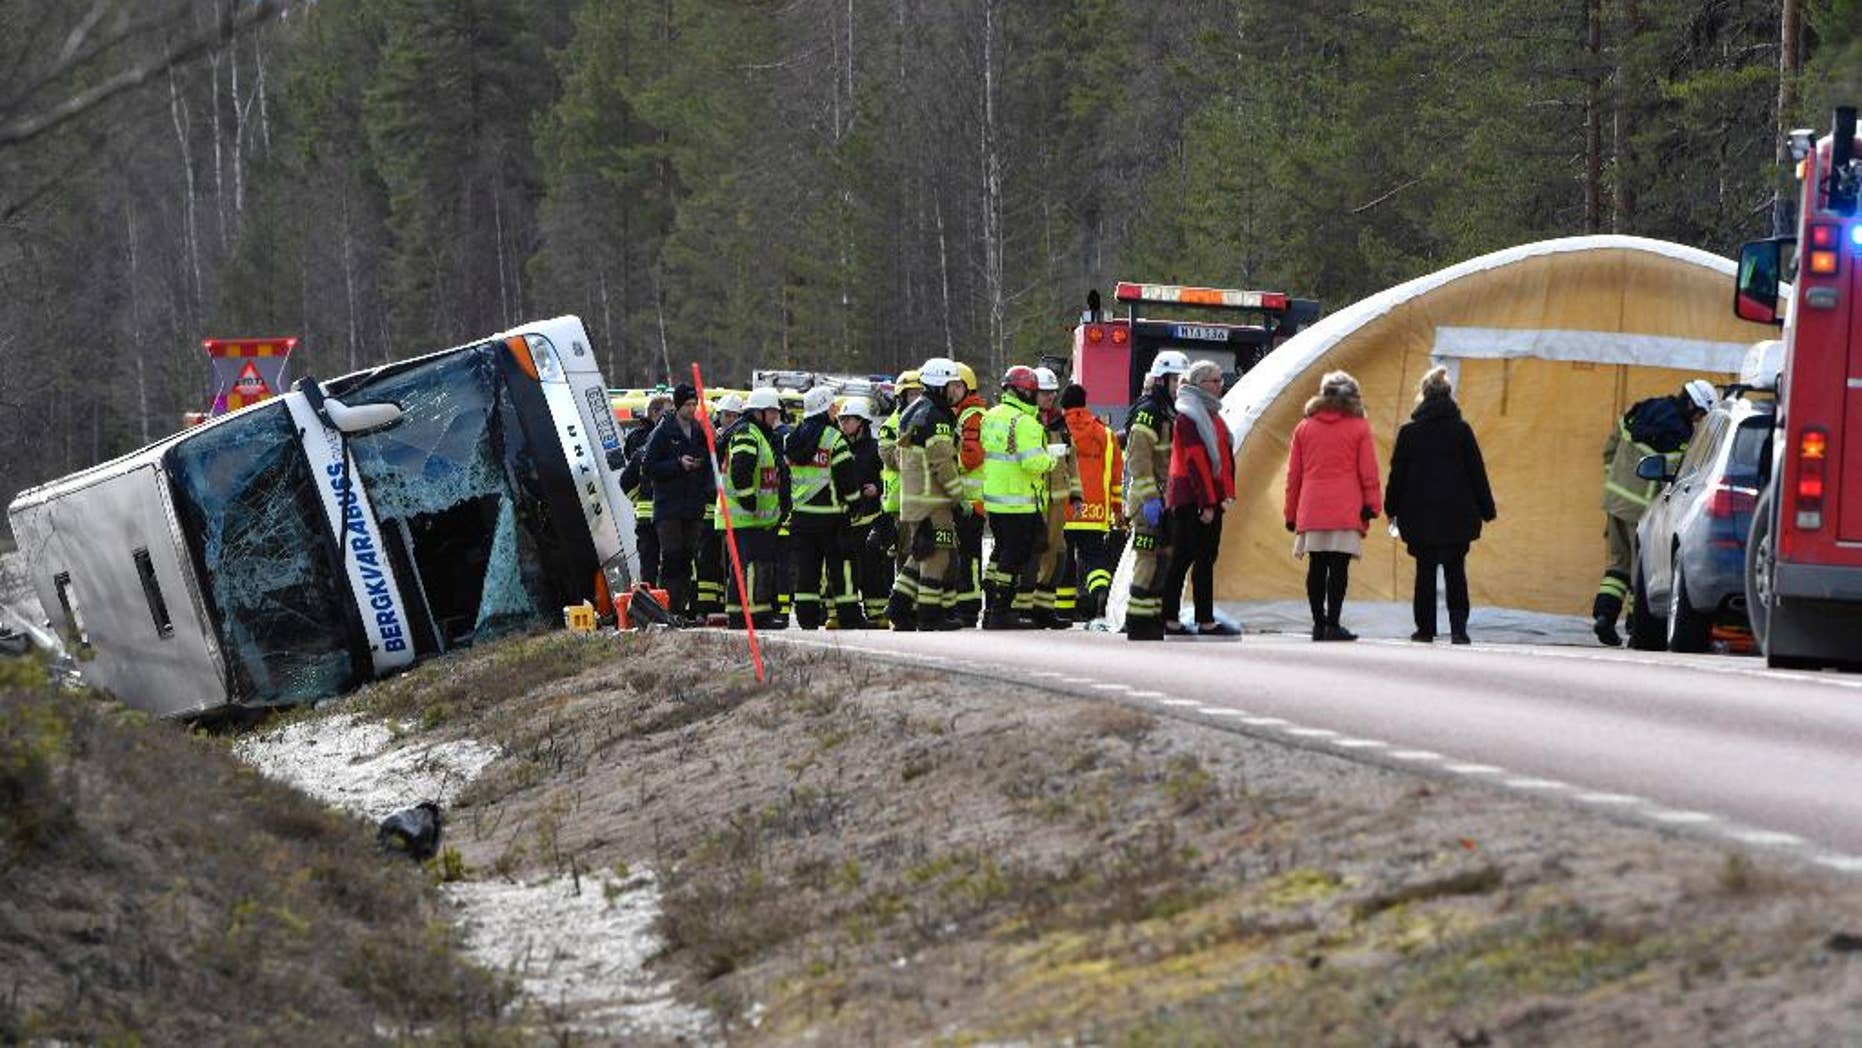 Emergency services and ambulance at the scene of a bus accident, on the E45 between Sveg and Fagelsjo in Sweden, Sunday, April 2, 2017.